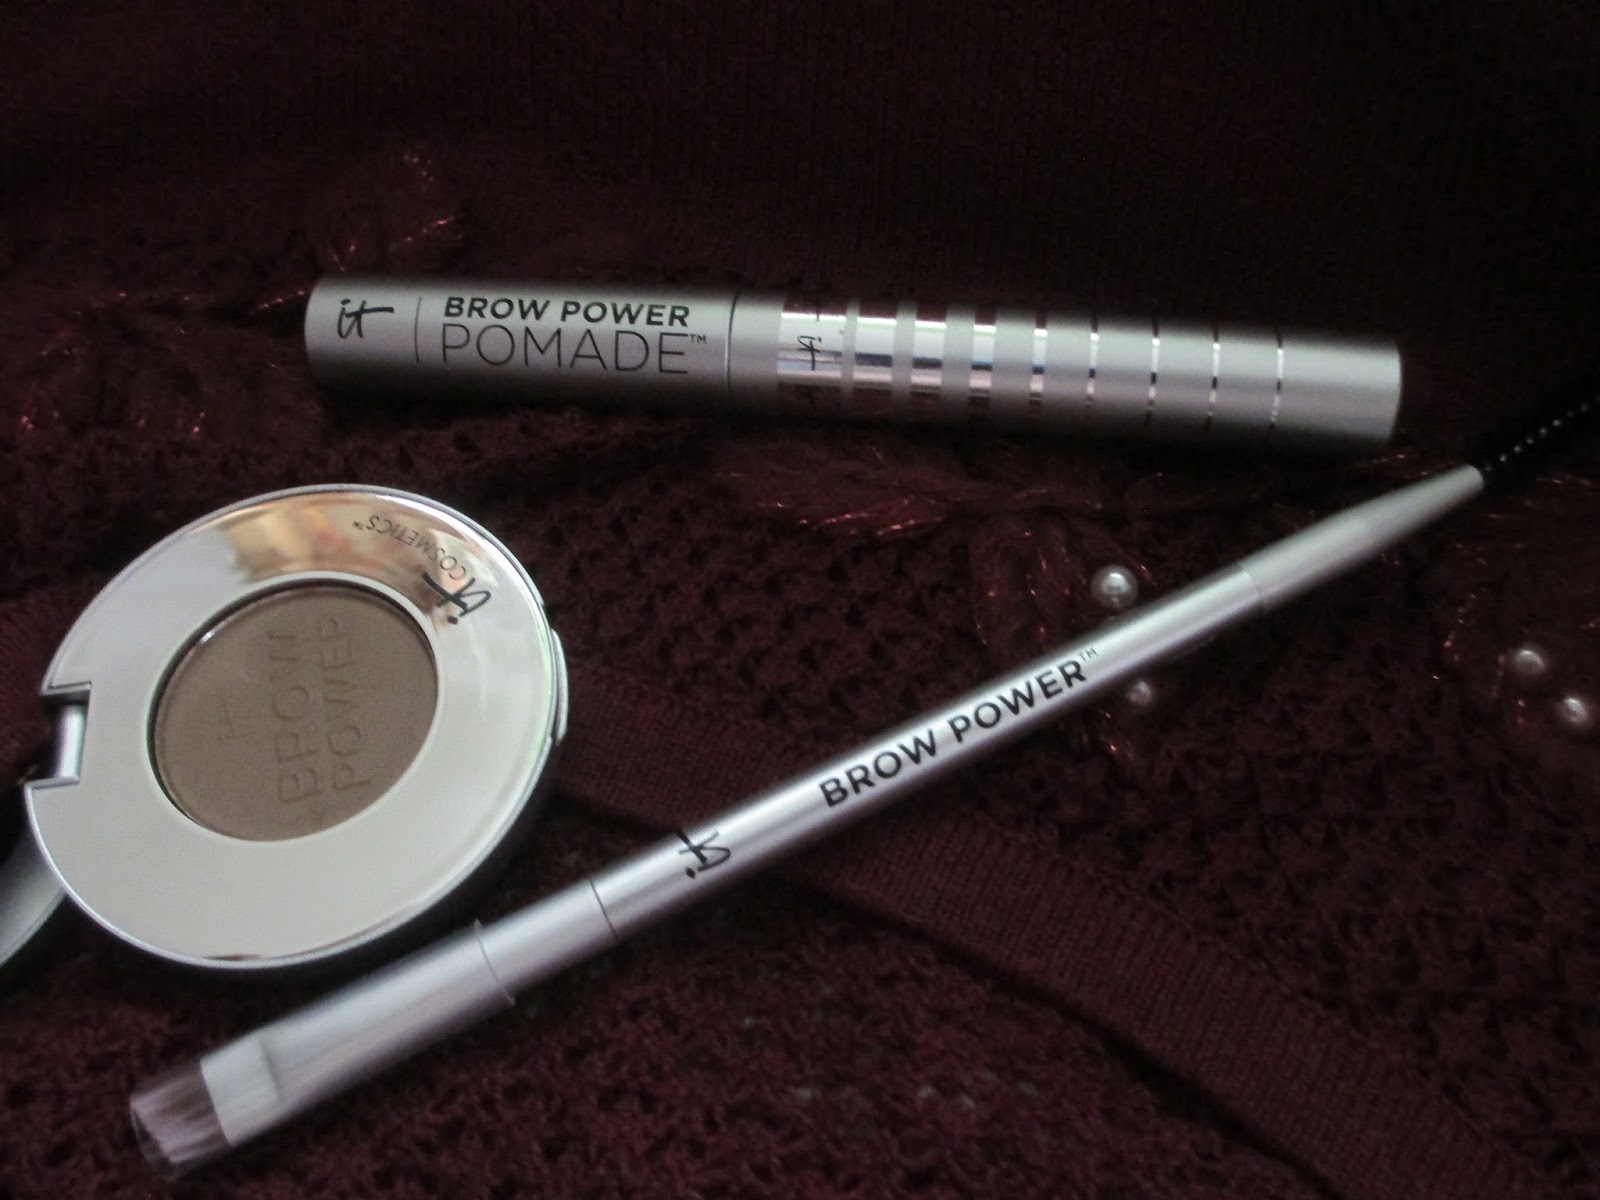 Whats Inside Your Beauty Bag It Cosmetics Brow Power Powderbrush